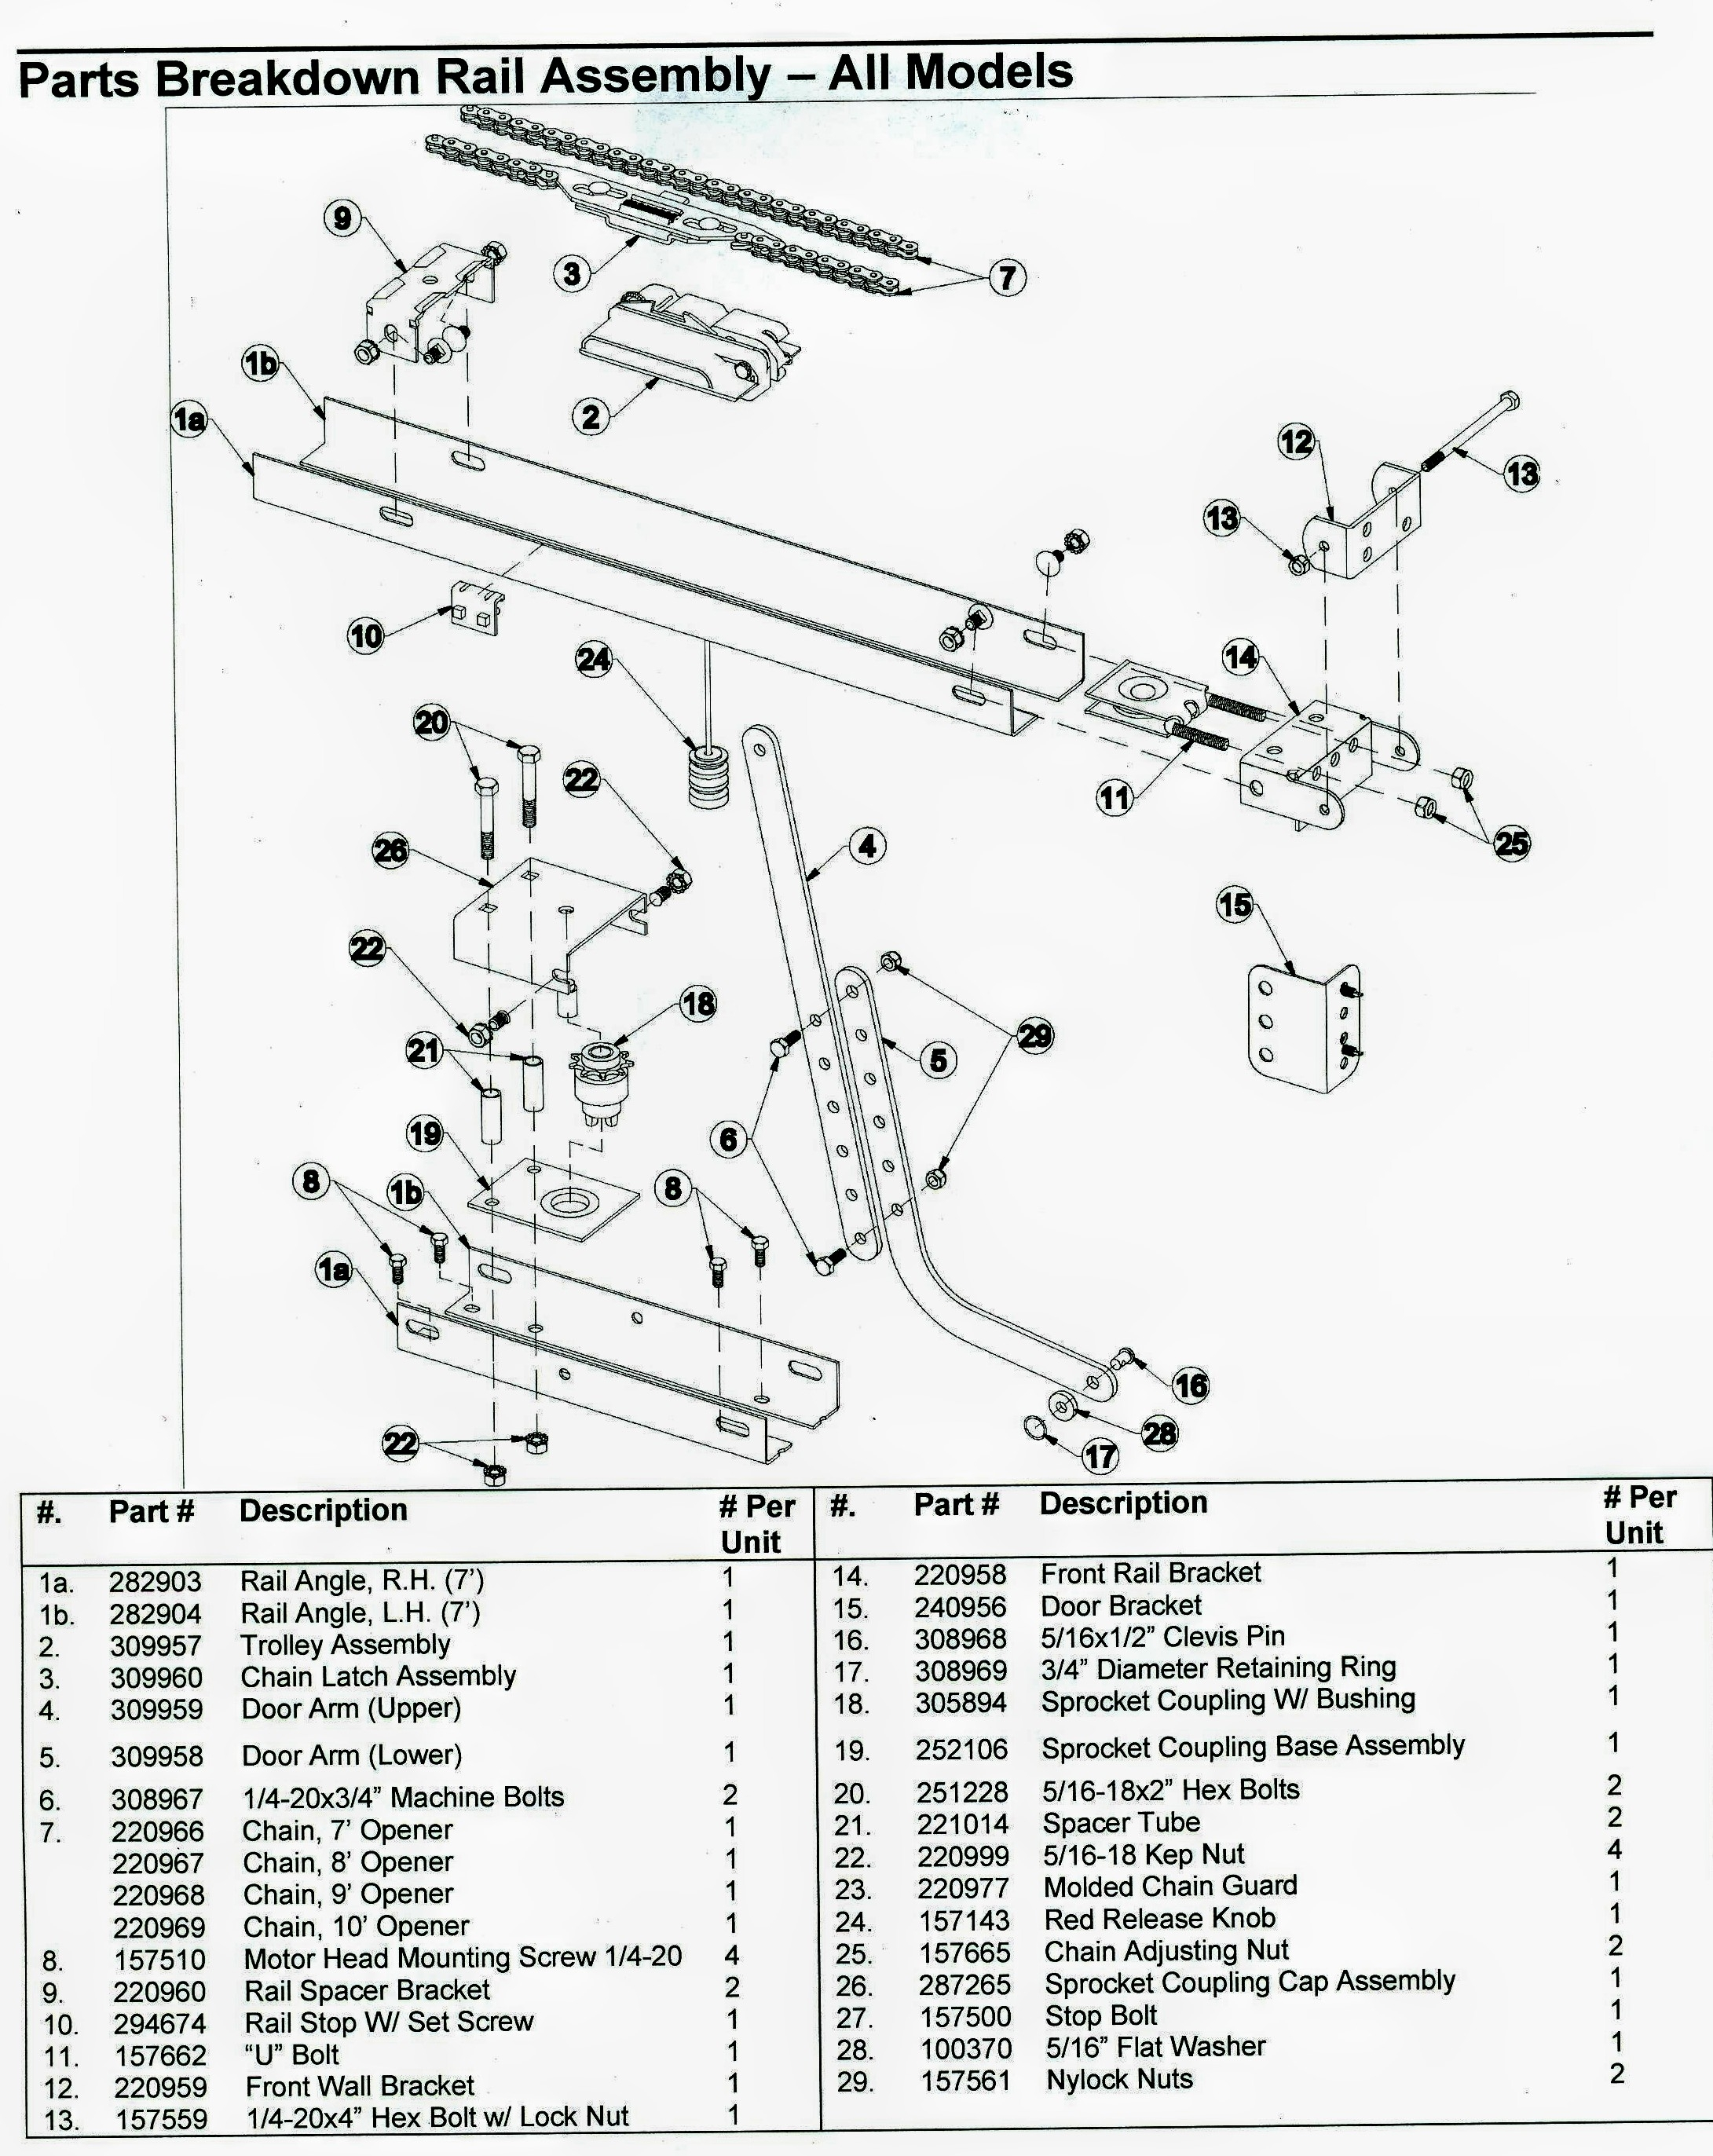 wiring diagram for liftmaster garage door opener on free throughout chamberlain garage door opener parts diagram wiring diagram for liftmaster garage door opener on free chamberlain garage door opener wiring diagram at aneh.co